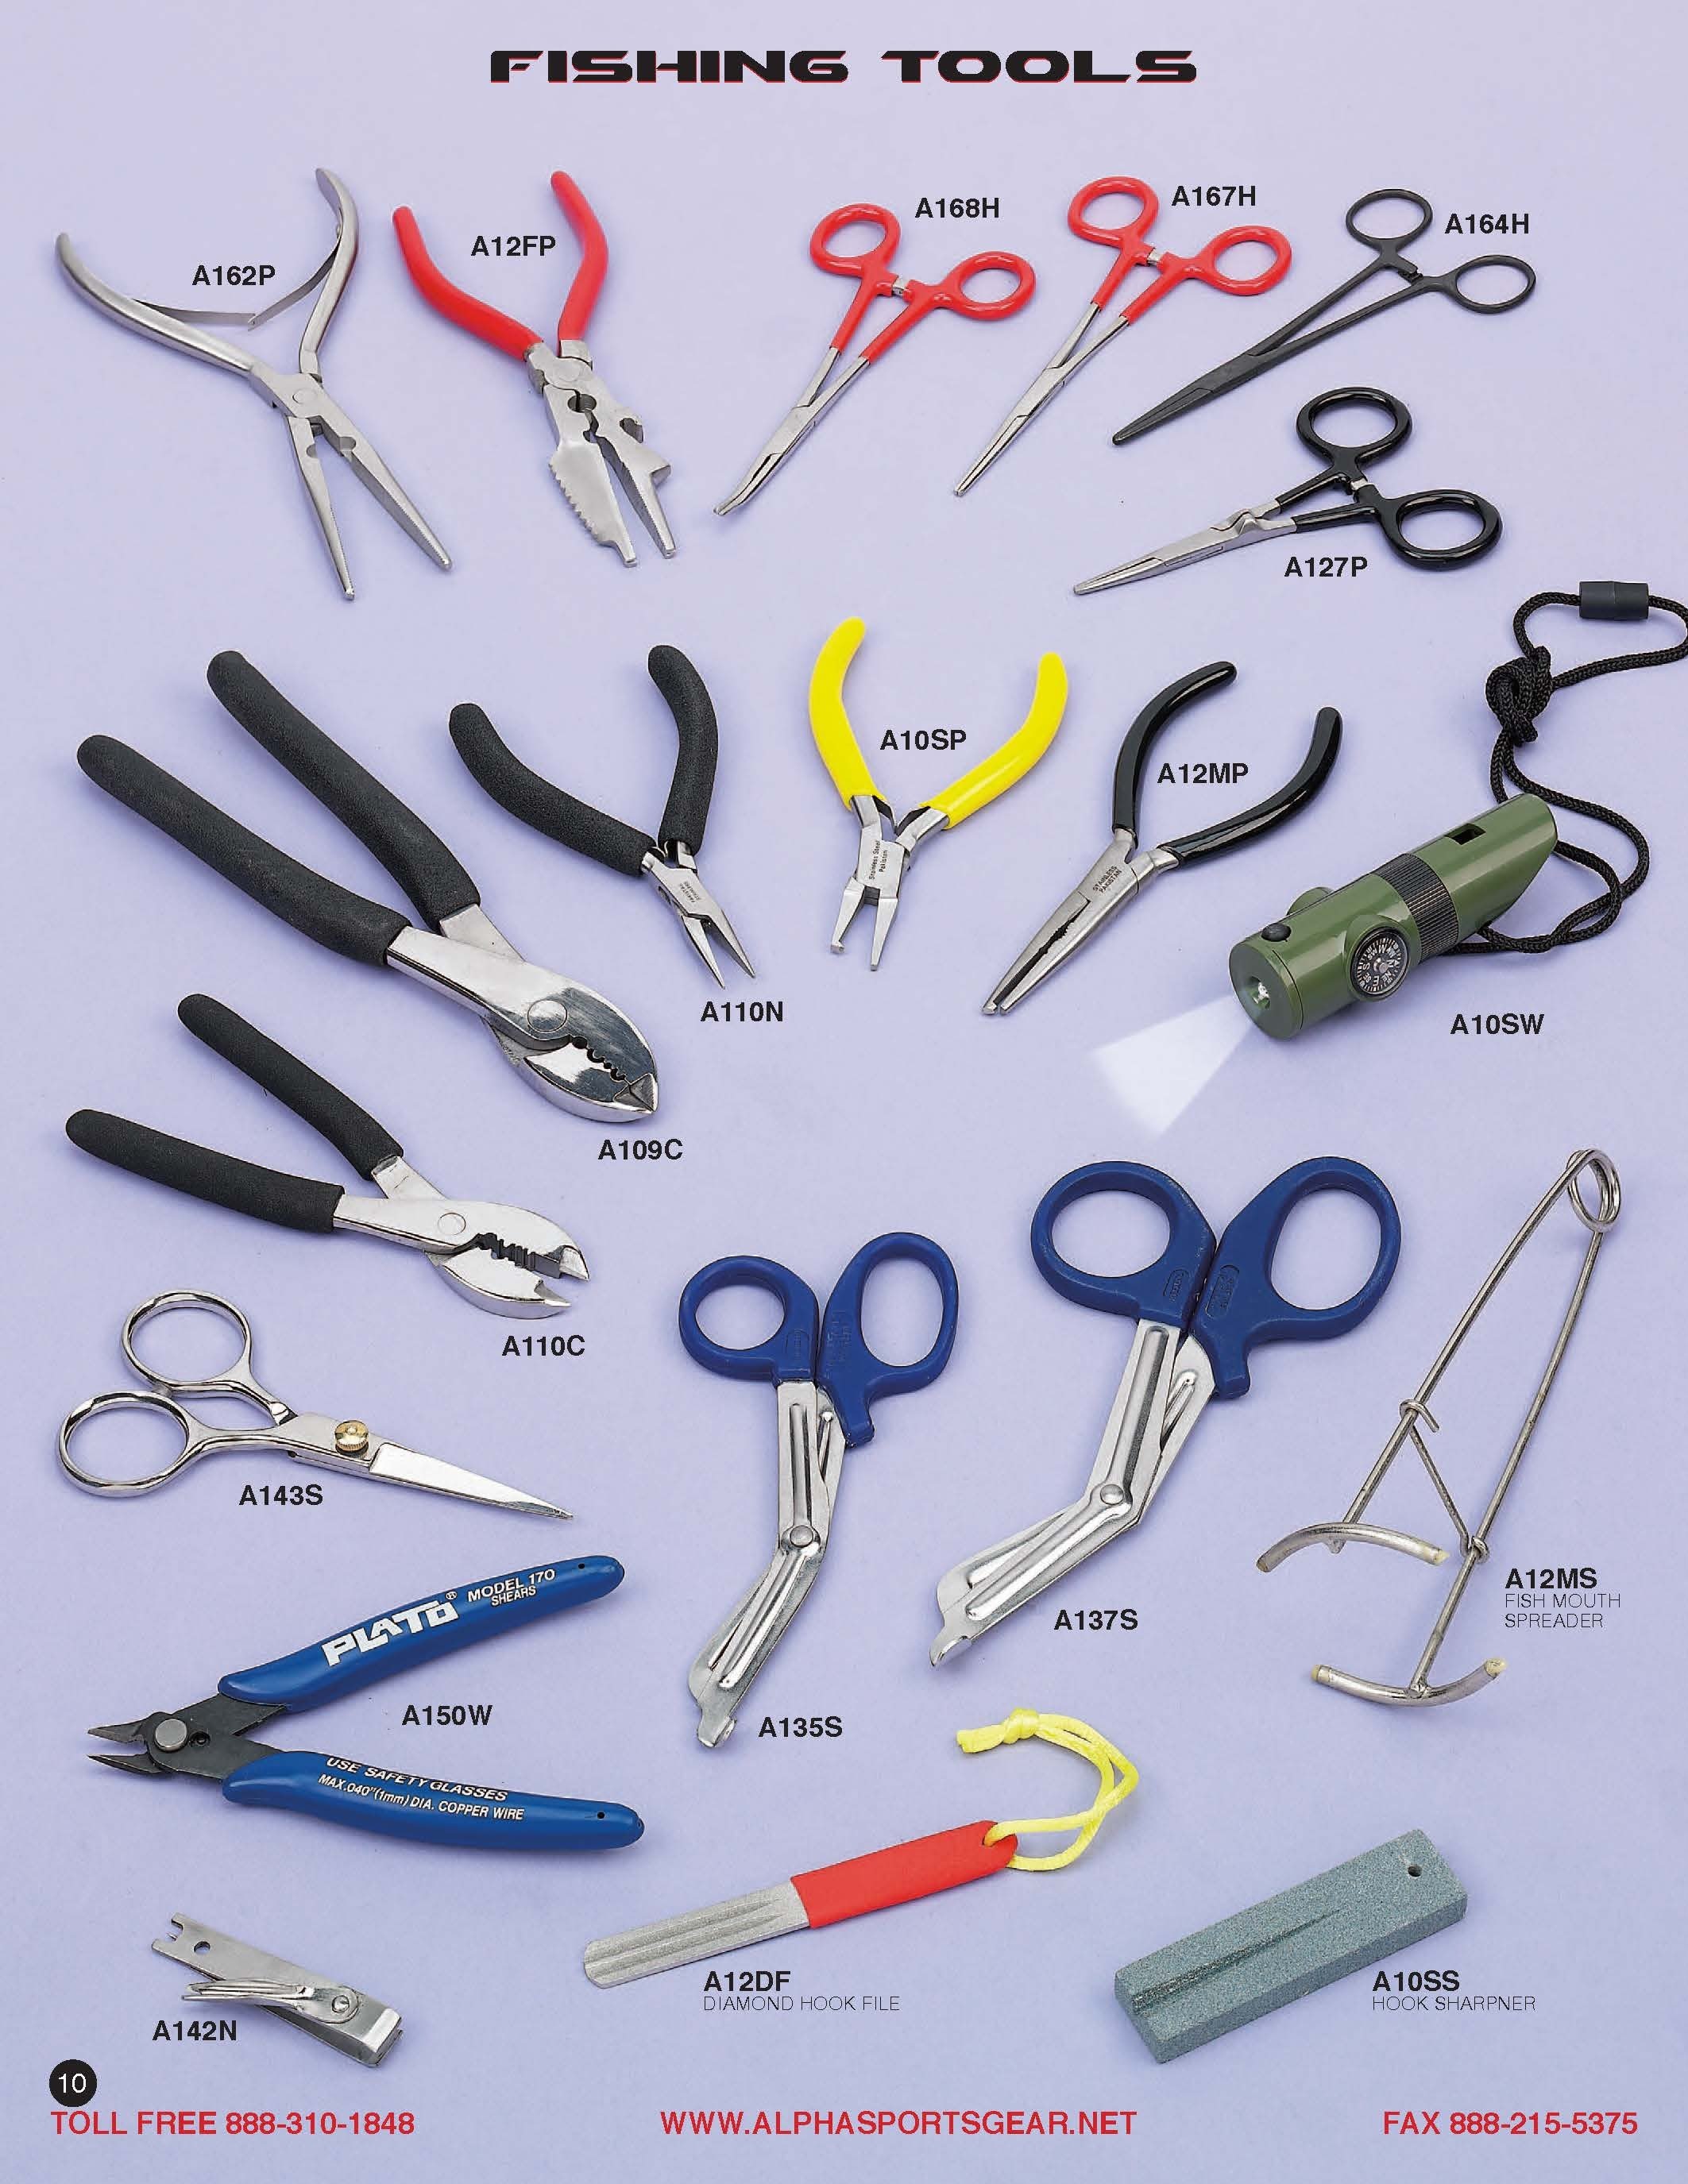 Scissors, Cutters forceps, Wire cutters, Pliers, Hook sharpener, Survival Whistle